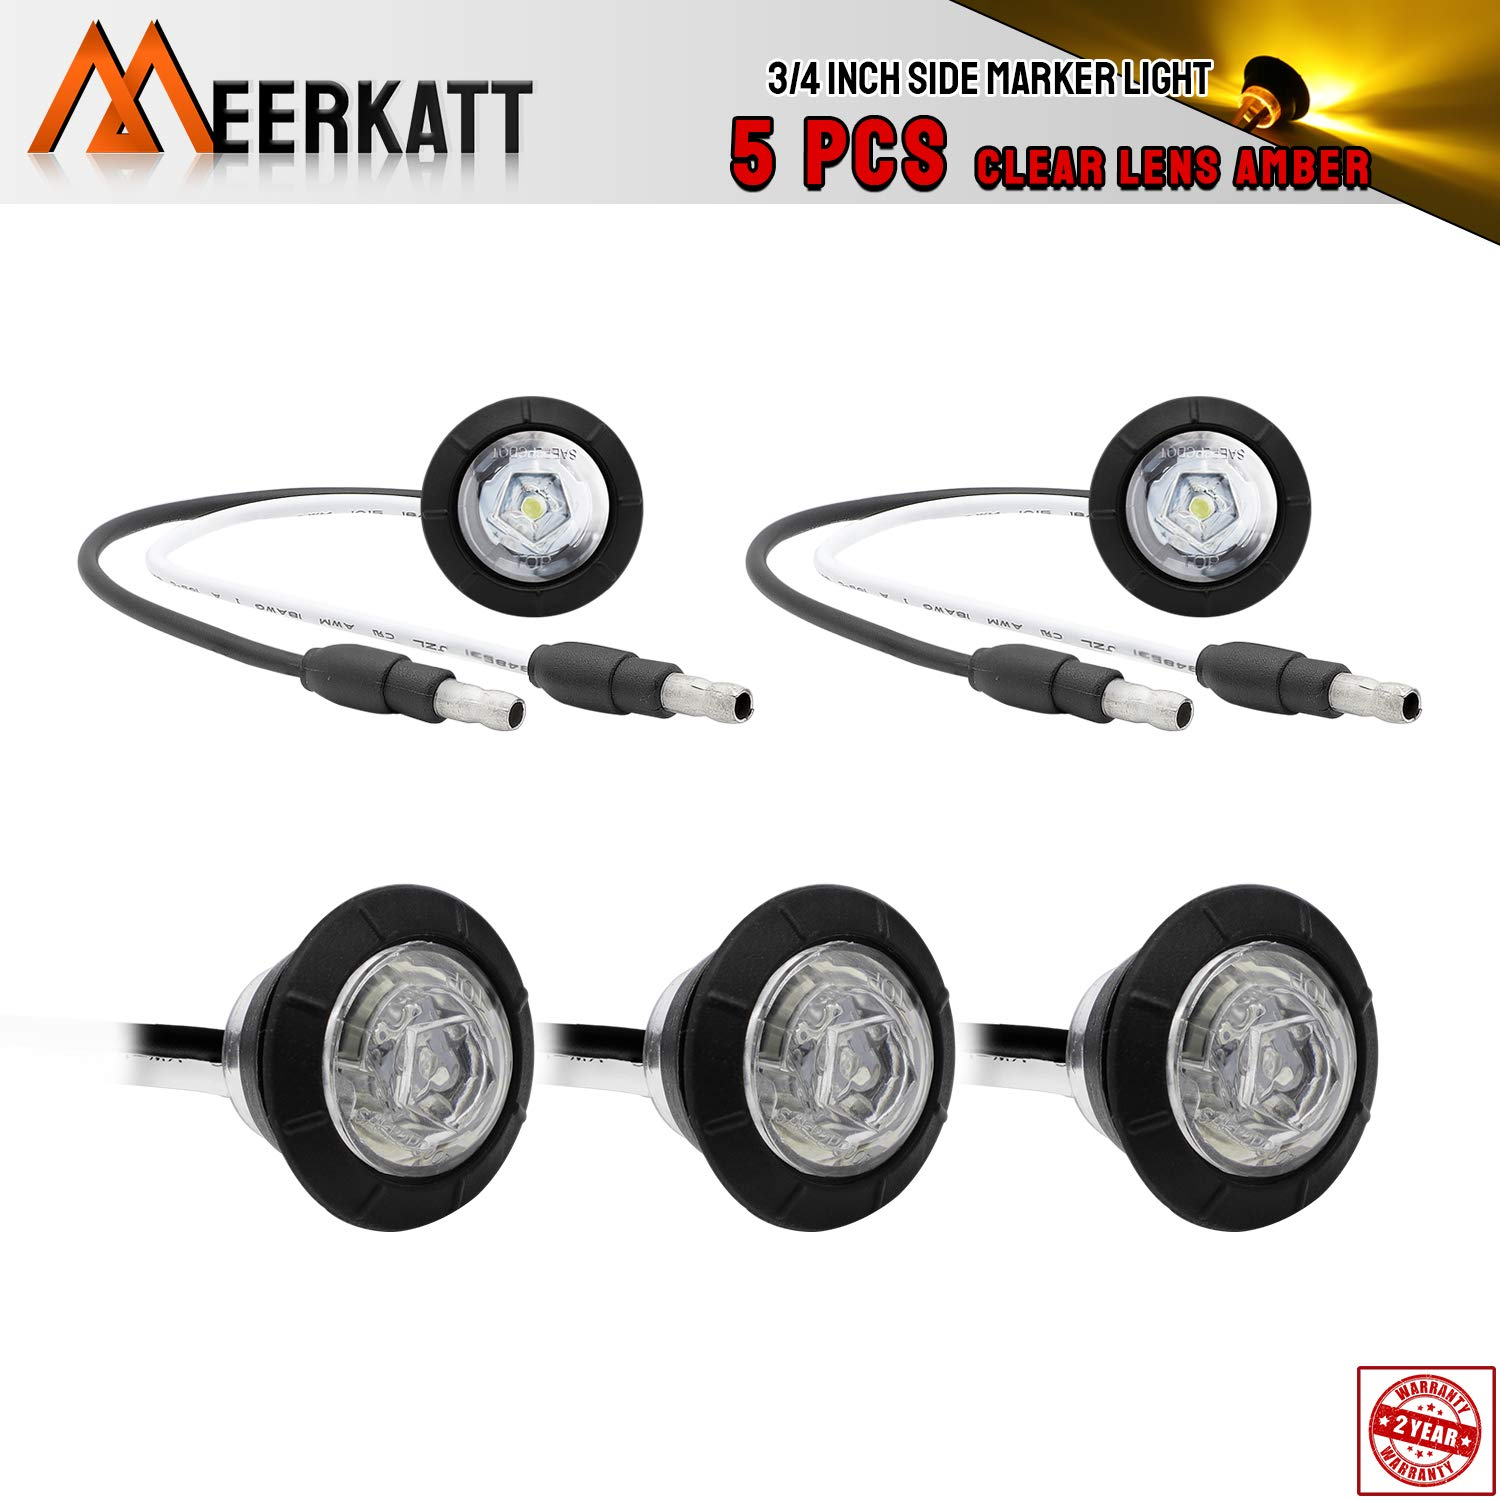 Meerkatt 3//4 inch Small Round Clear Lens 5 Amber Pack of 10 5 Red Special Generation Side LED Marker Indicators Lights Clearance Lamp Ship Boat Trailer Van Bus Truck Camper RV 12V DC Waterproof